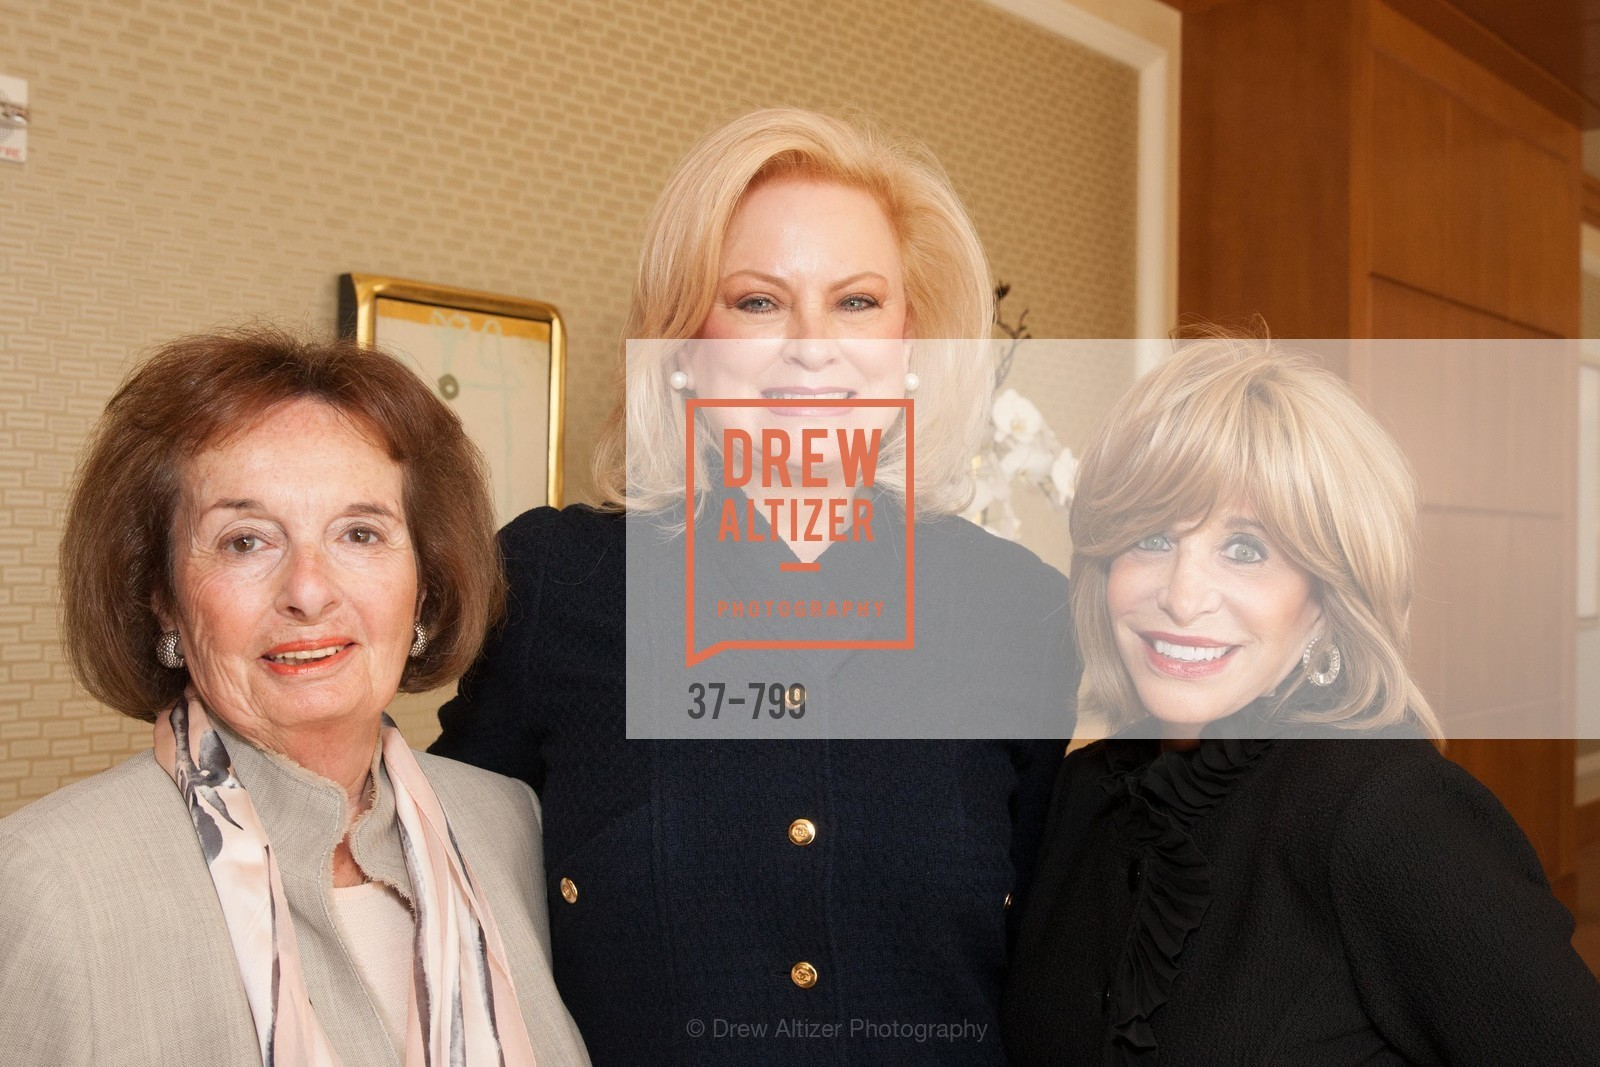 Anita Wornick, Chandra Friese, Esty Lawrie, COMPASSION & CHOICES - Empowerment Luncheon, US, April 24th, 2015,Drew Altizer, Drew Altizer Photography, full-service agency, private events, San Francisco photographer, photographer california